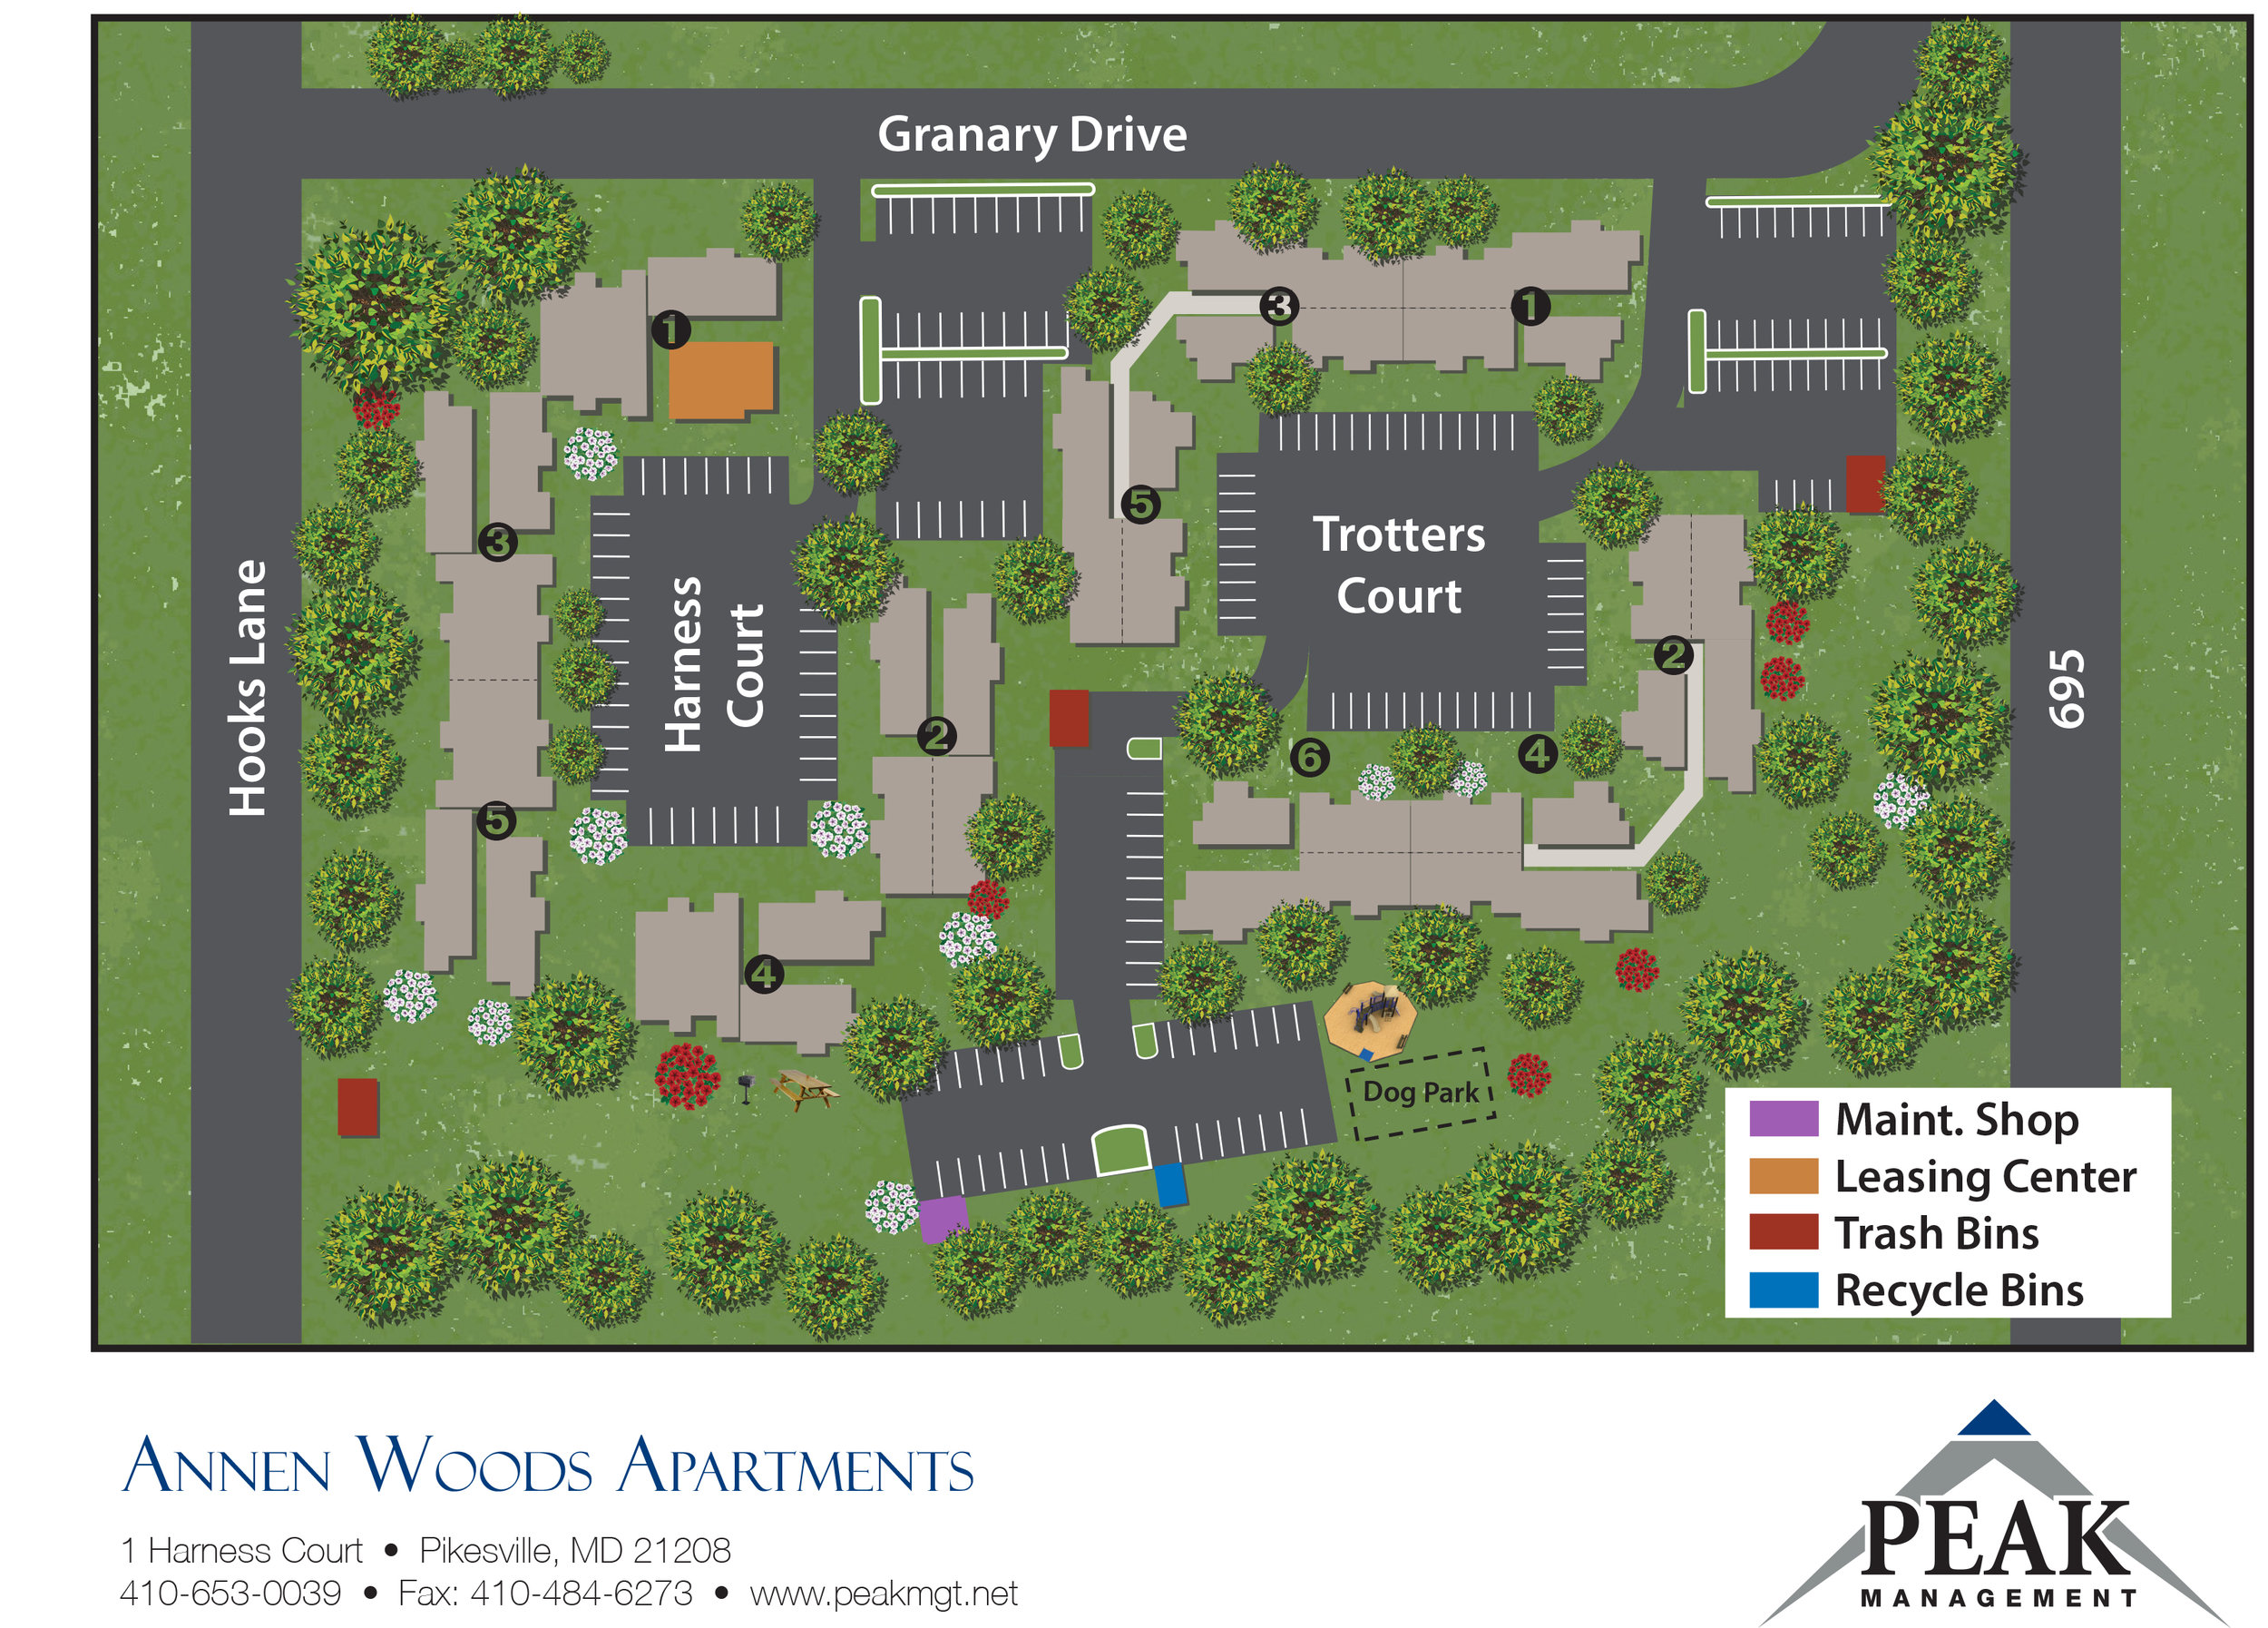 Site Plan of Annen Woods Apartments in Pikesville, MD